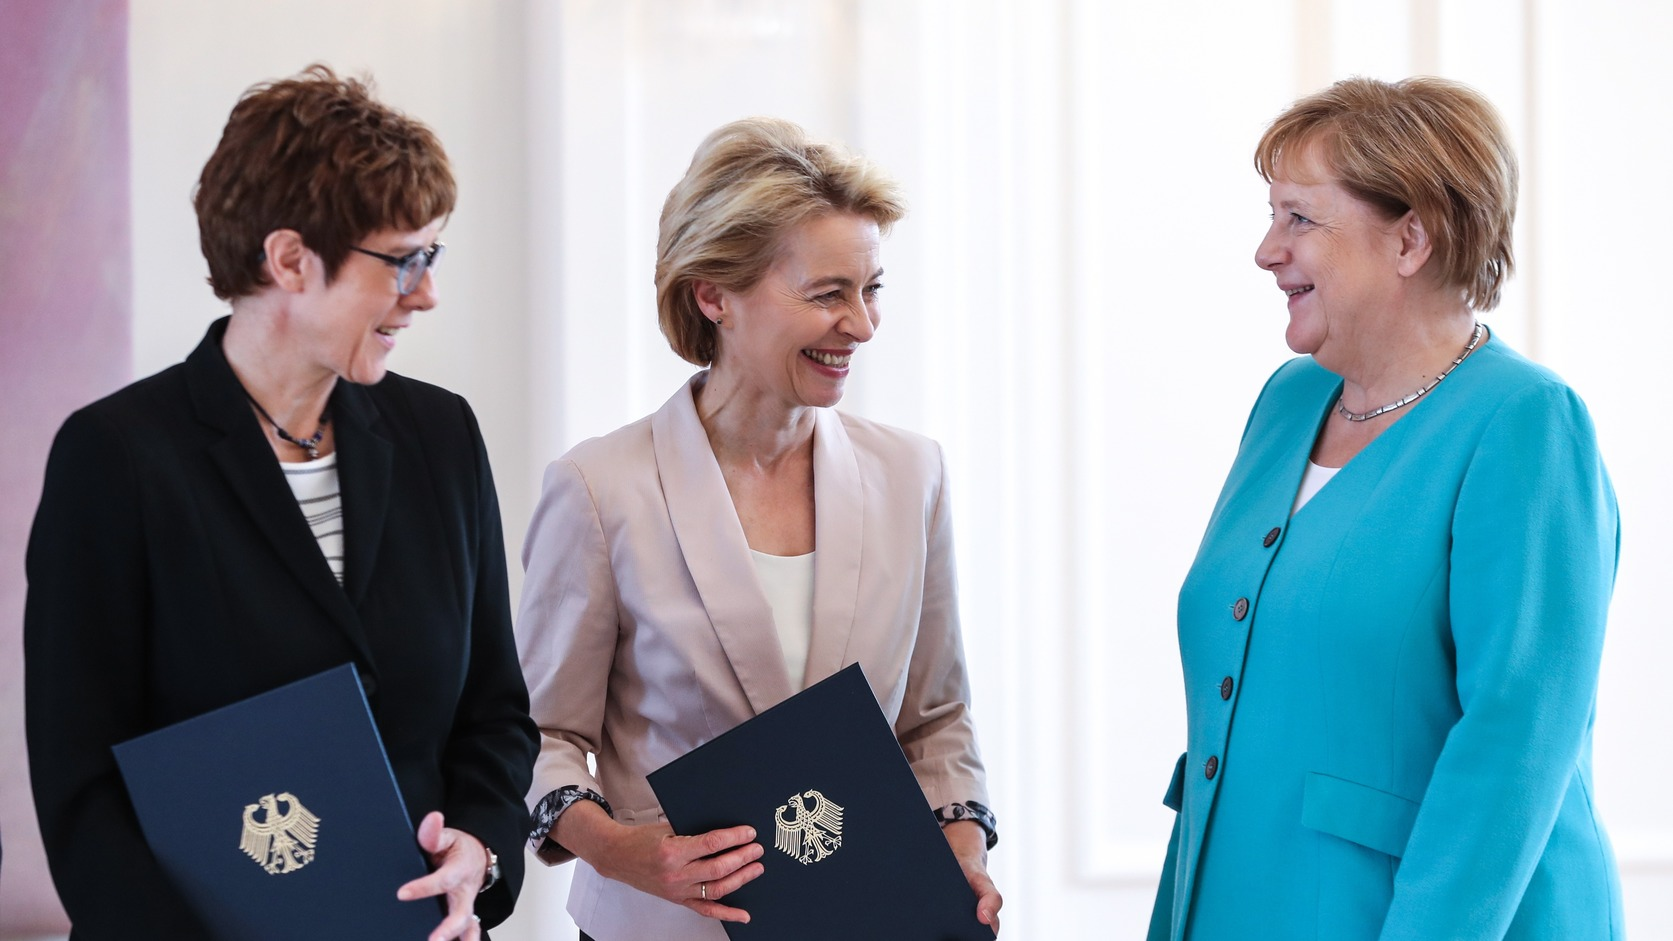 epa07721930 (L-R) Incoming German Defence Minister Annegret Kramp-Karrenbauer, outgoing German Minister of Defense Ursula von der Leyen, and German Chancellor Angela Merkel smile during the handing over of the certificate of discharge to von der Leyen and appointment to Kramp-Karrenbauer, at Bellevue Palace in Berlin, Germany, 17 July 2019. Mueller as First Vice President of the German Federal Council handed the certificates of discharge and appointment - signed by the German President Steinmeier - to the Ministry of Defense to outgoing von der Leyen and incoming Kramp-Karrenbauer.  EPA/FELIPE TRUEBA